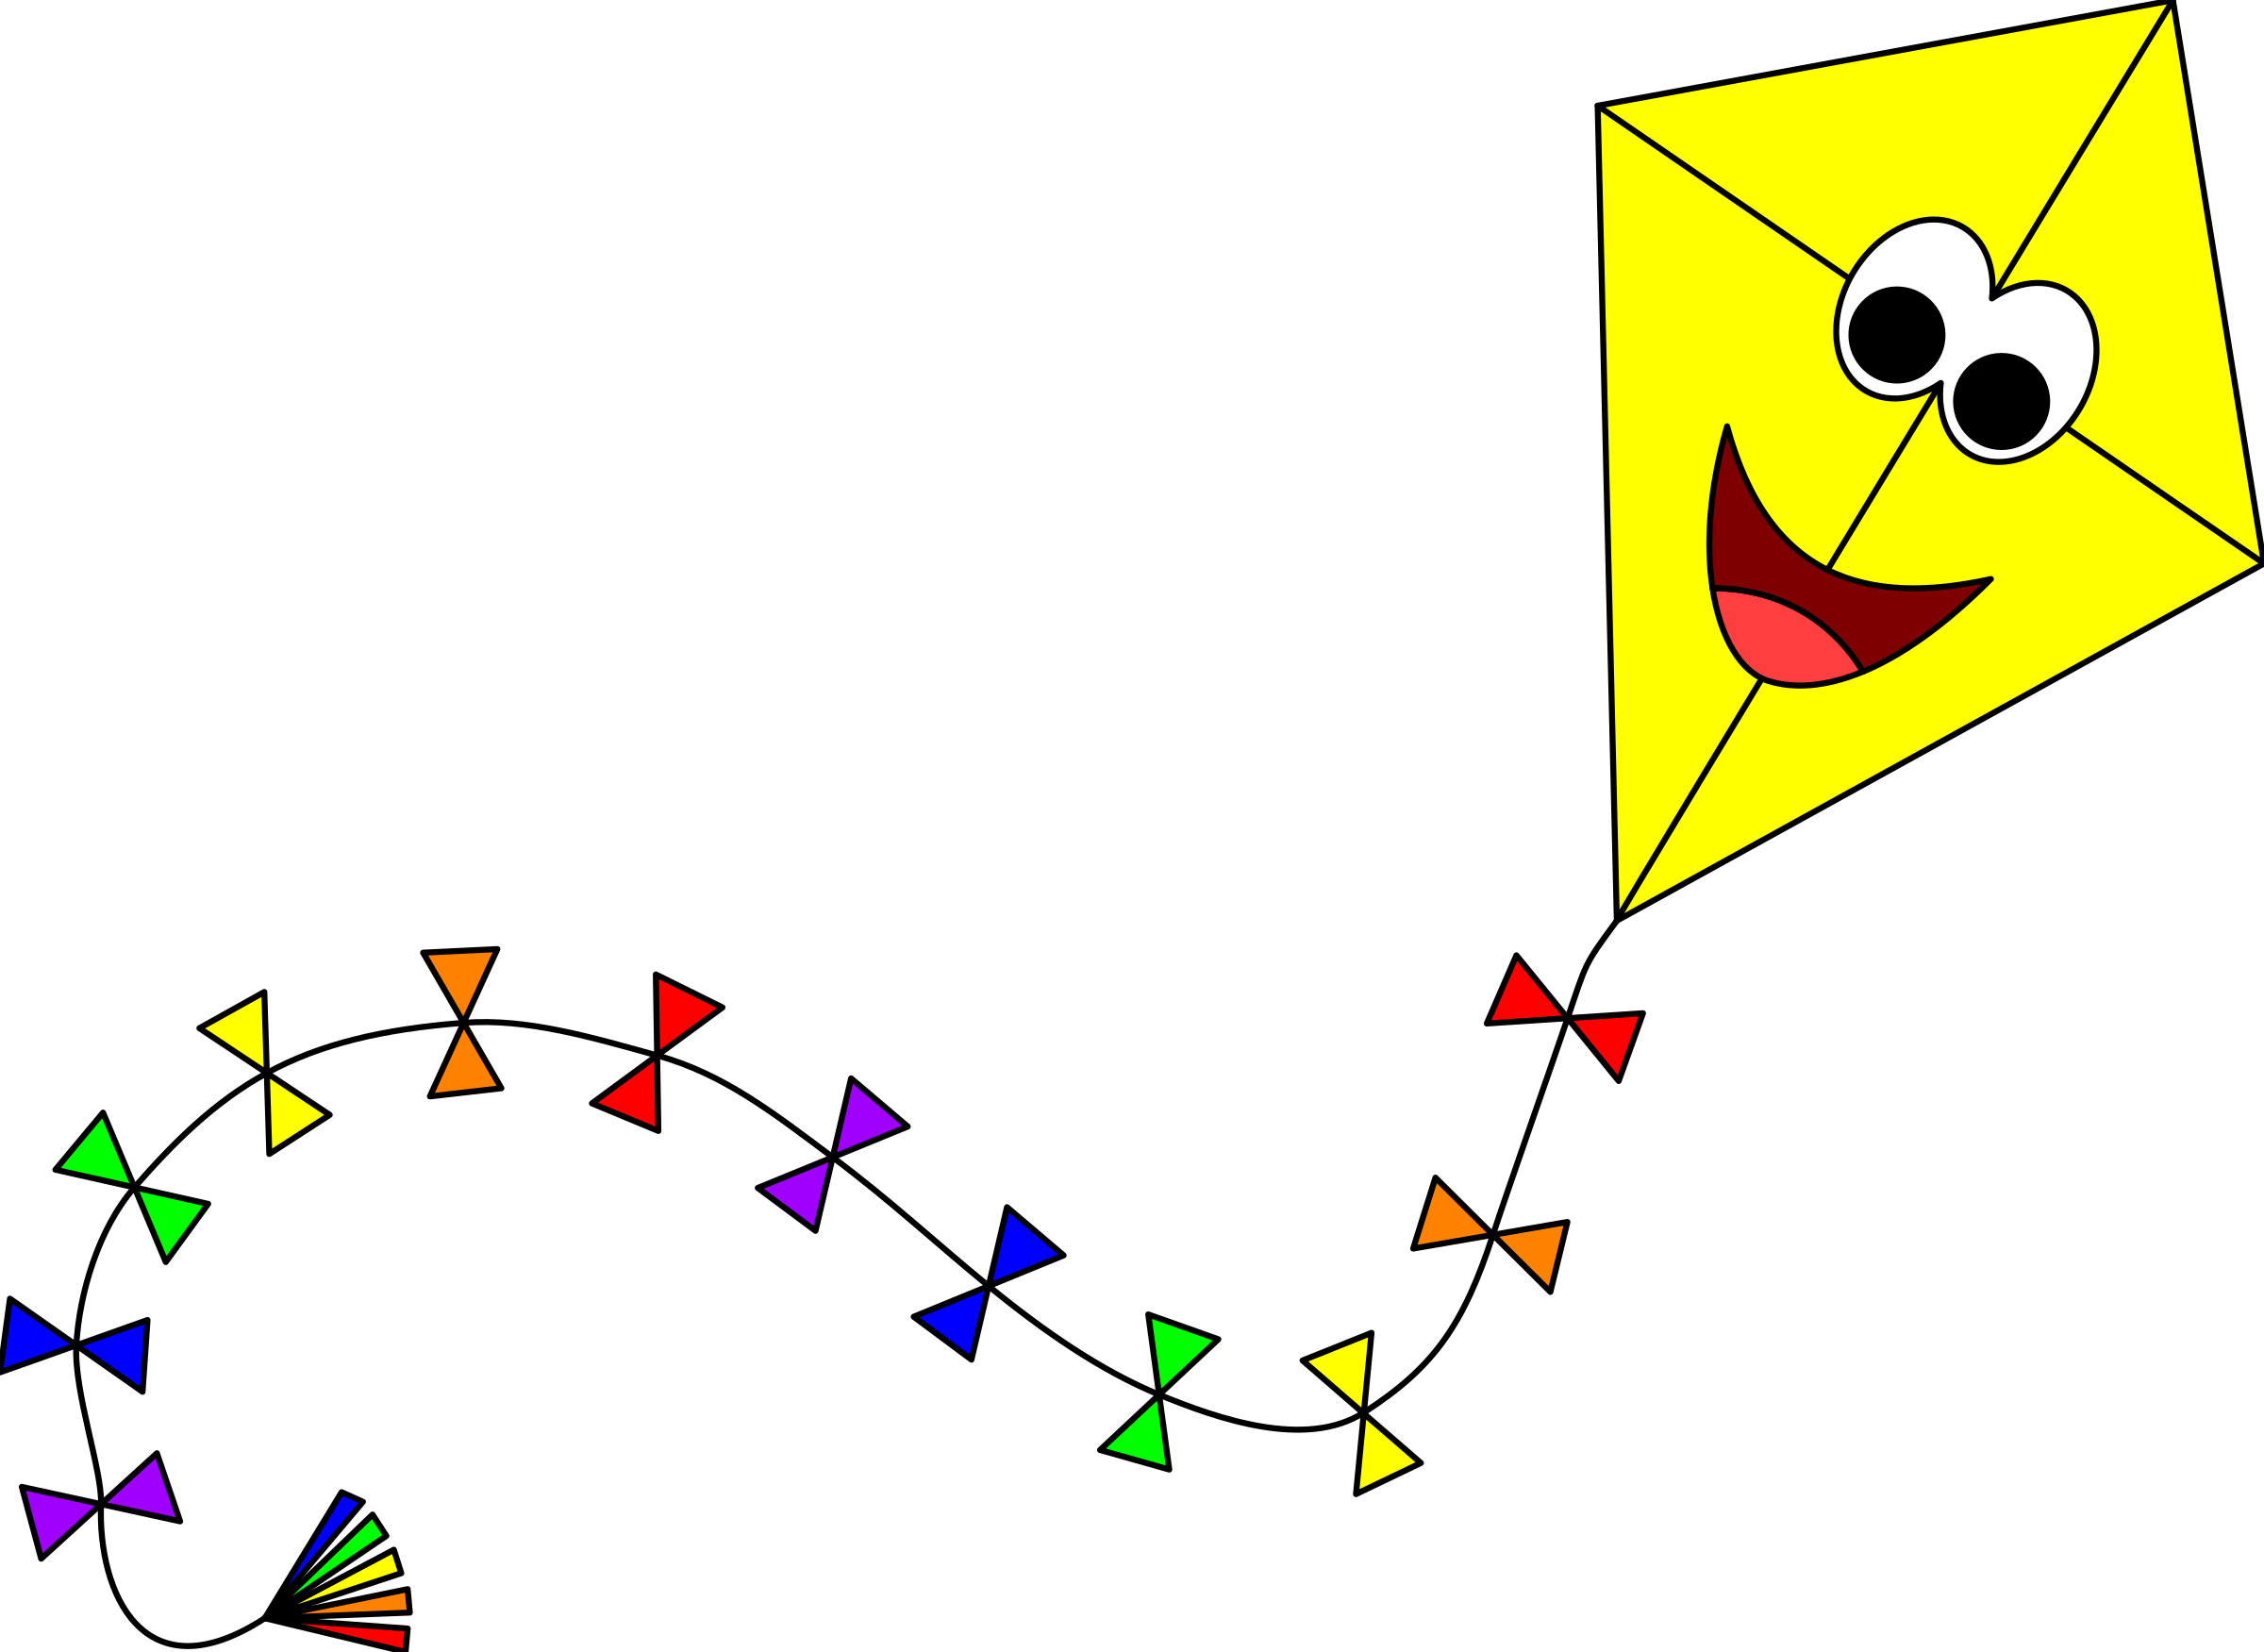 Kite Clipart Images   Free download best Kite Clipart ...